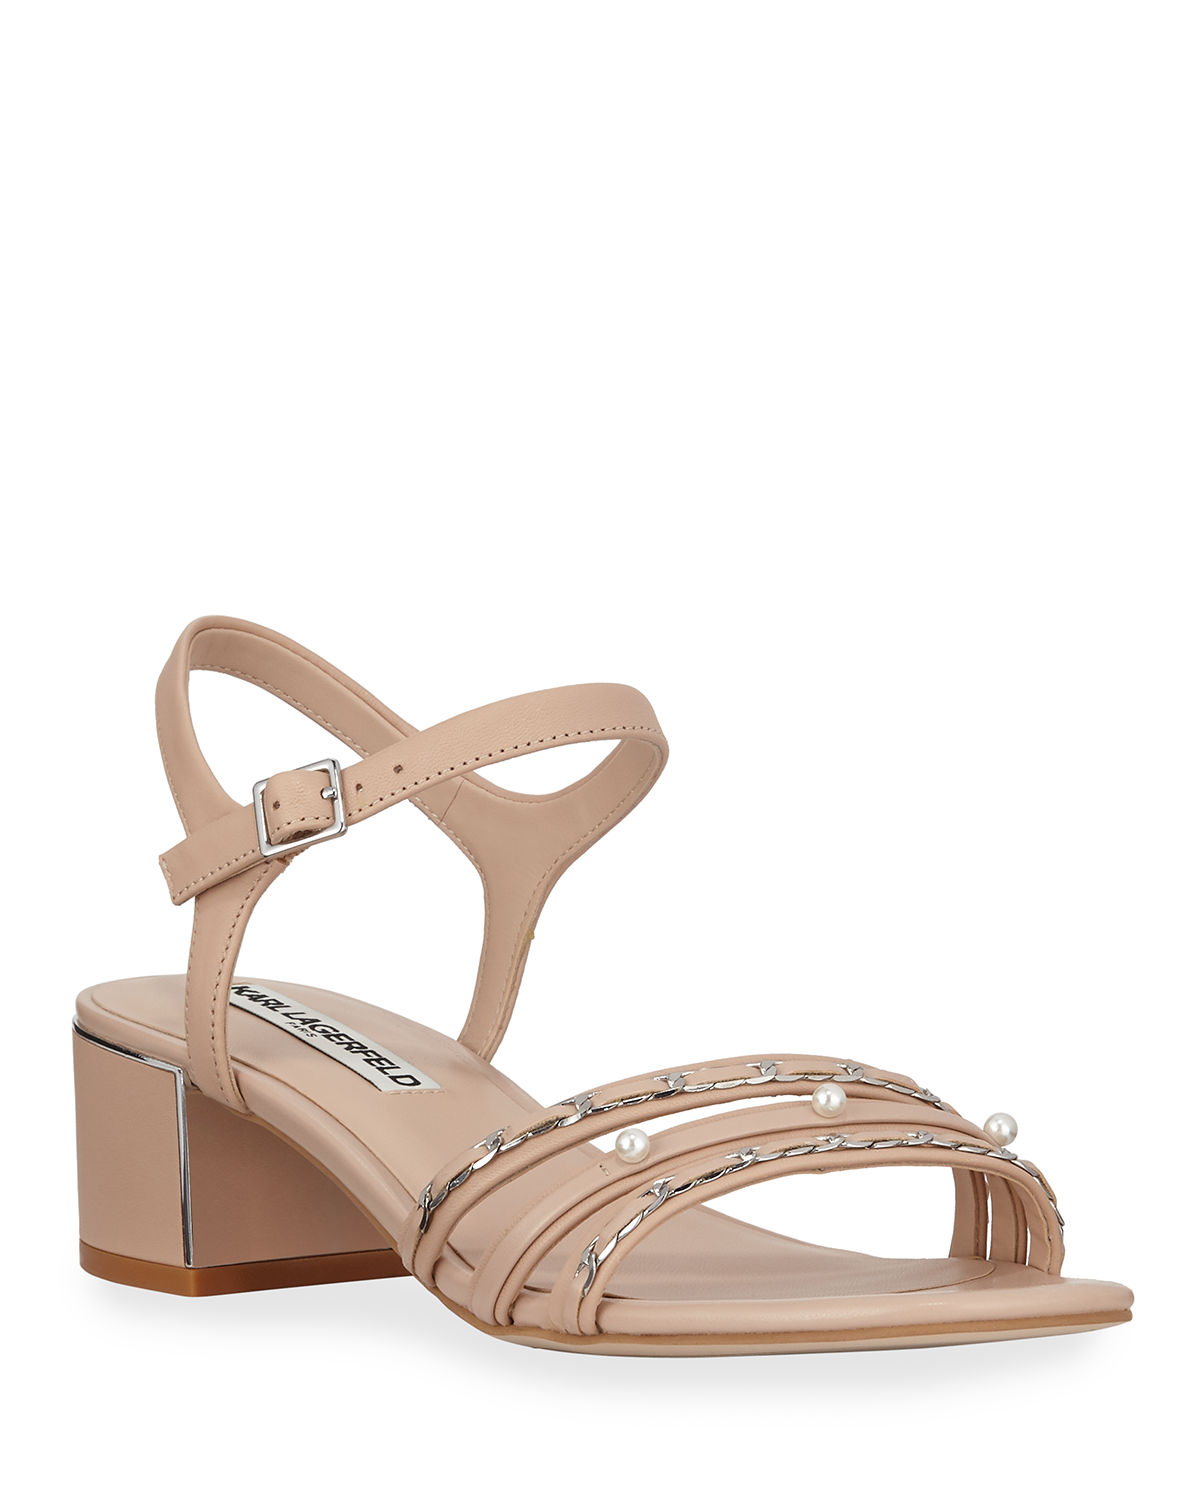 Karl Lagerfeld Sandals TORI PEARLY STUDDED LEATHER CITY SANDALS